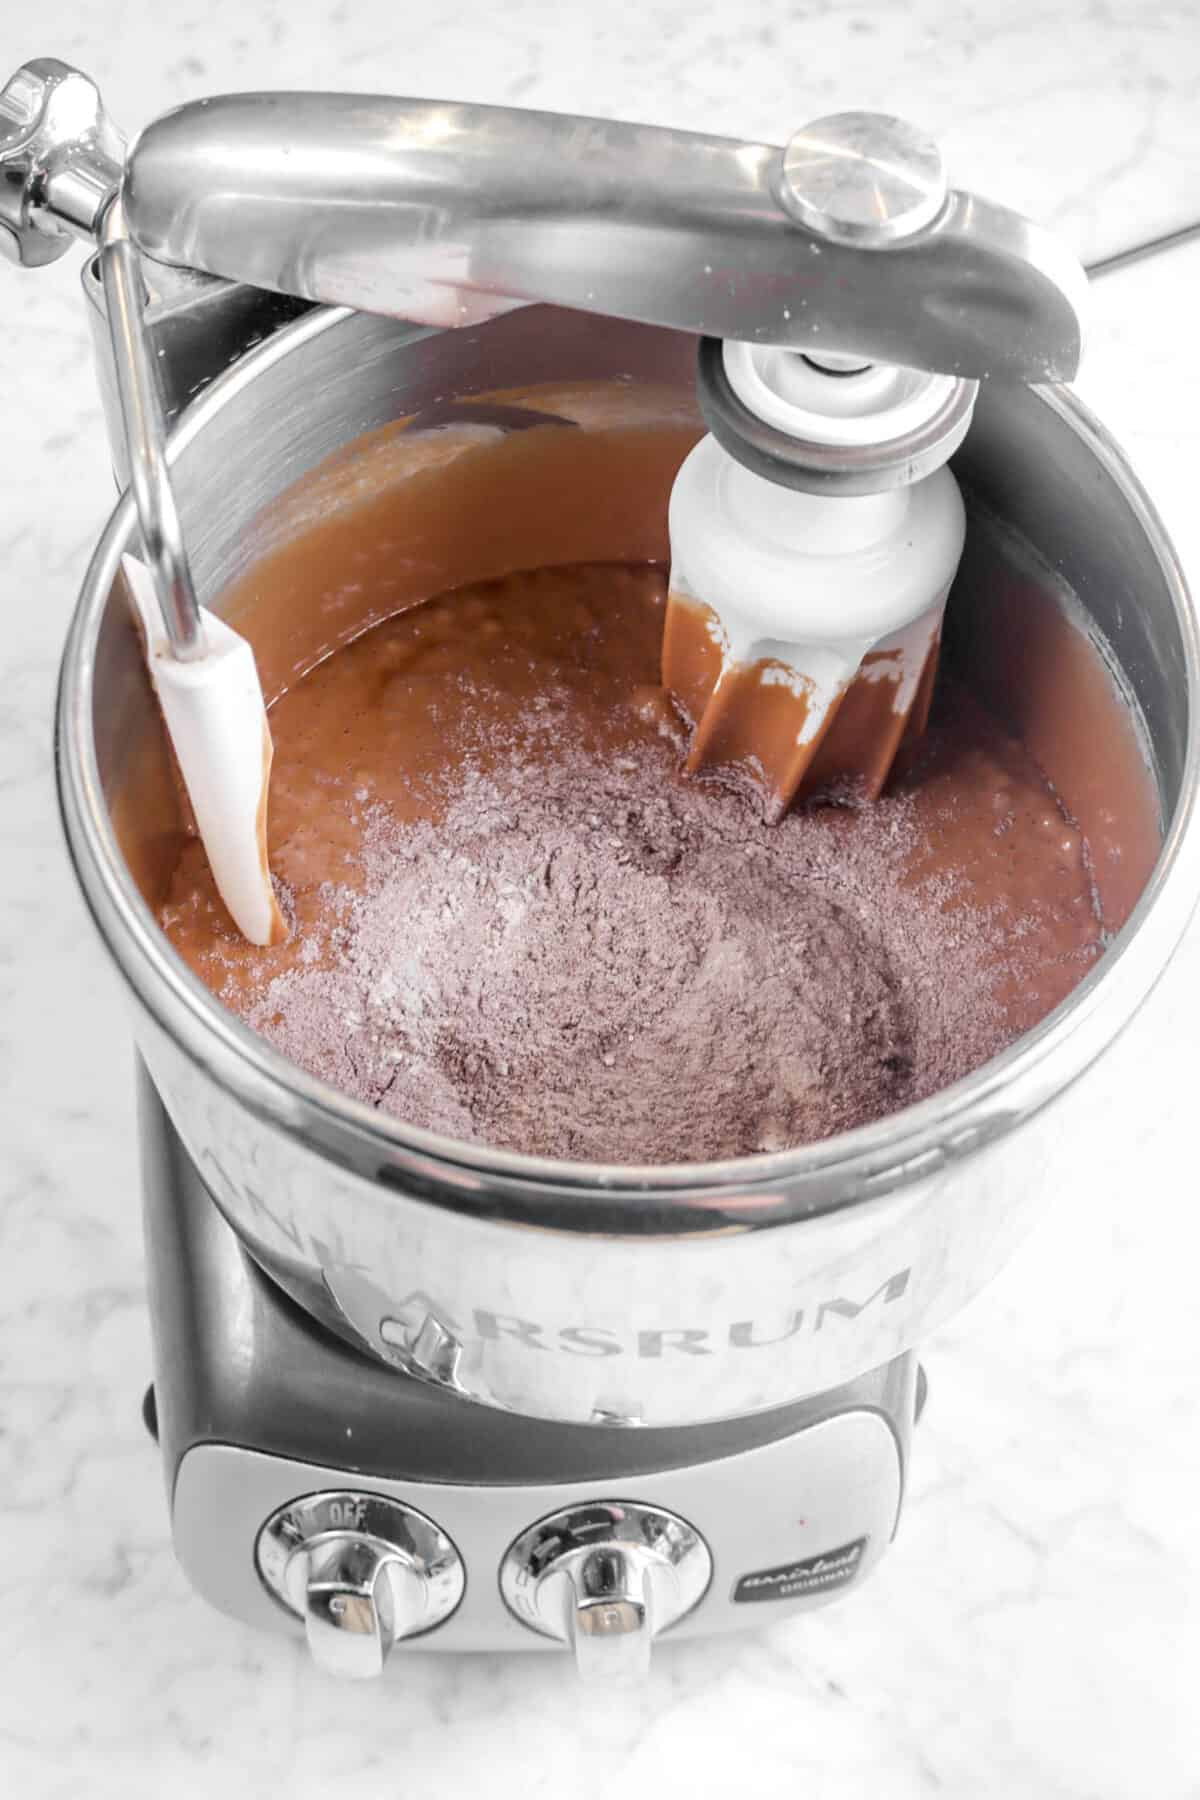 flour mixture added to brownie batter